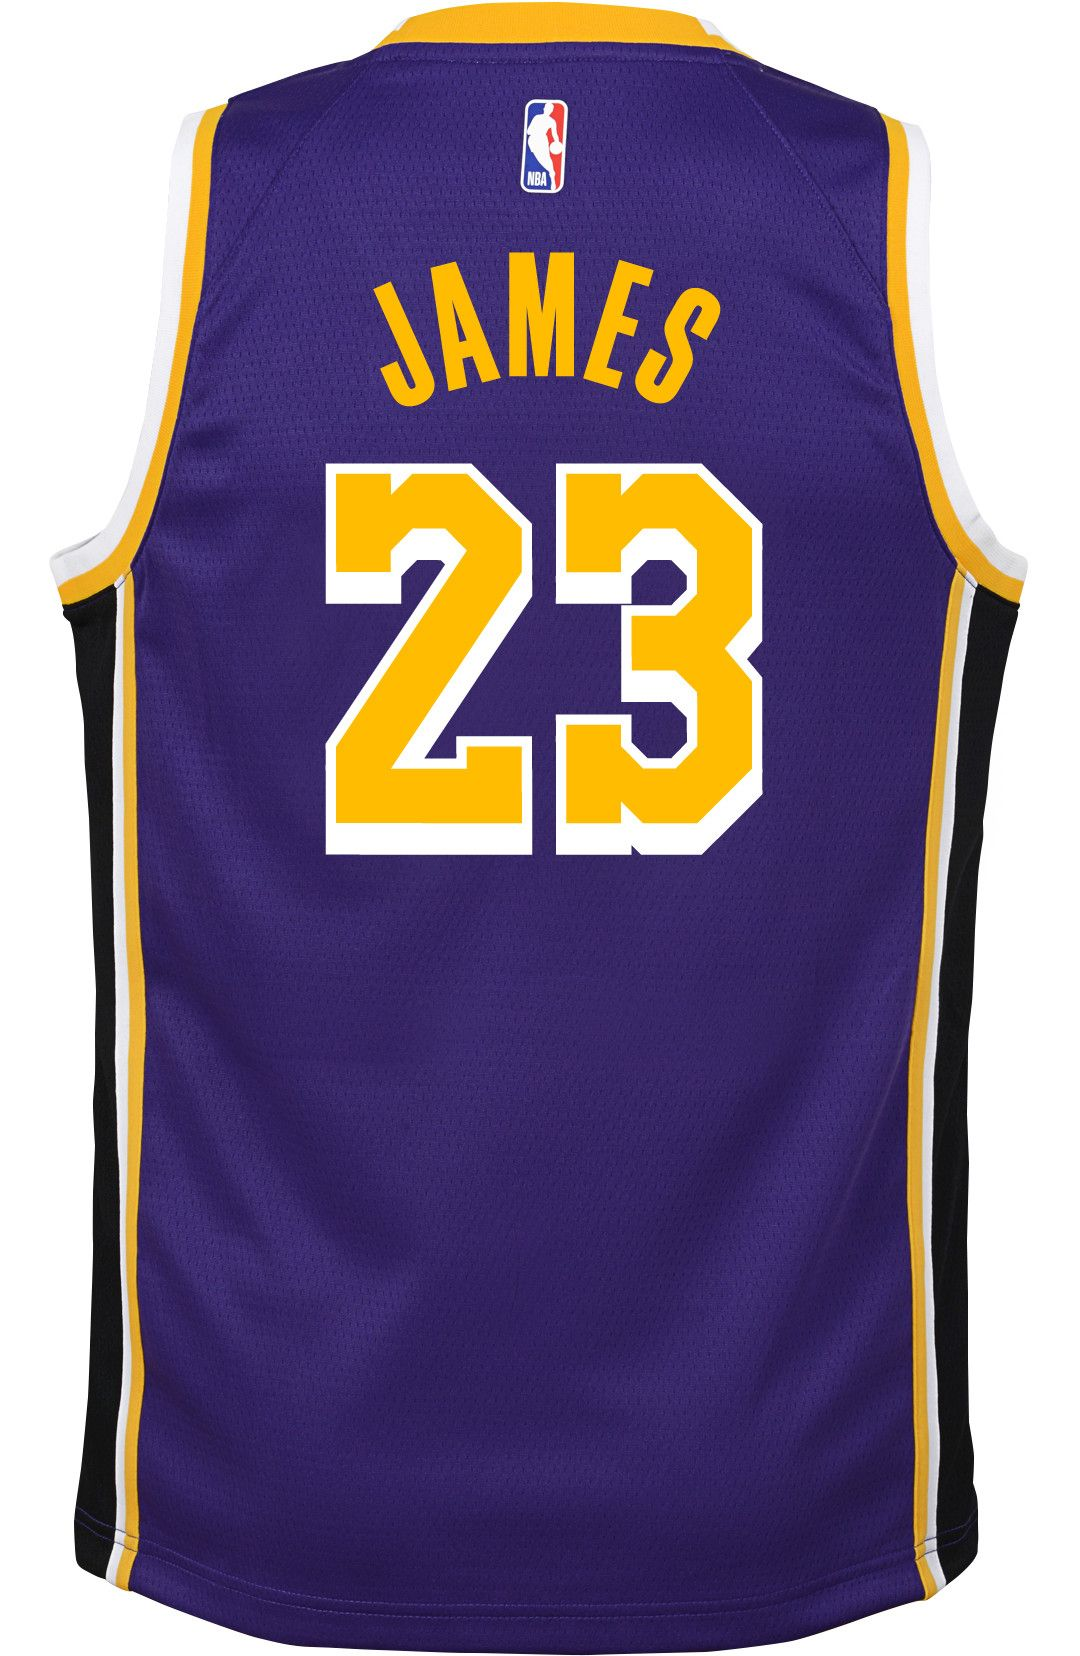 5624c62ef Nike Youth Los Angeles Lakers LeBron James Dri-FIT Purple Swingman Jersey 3